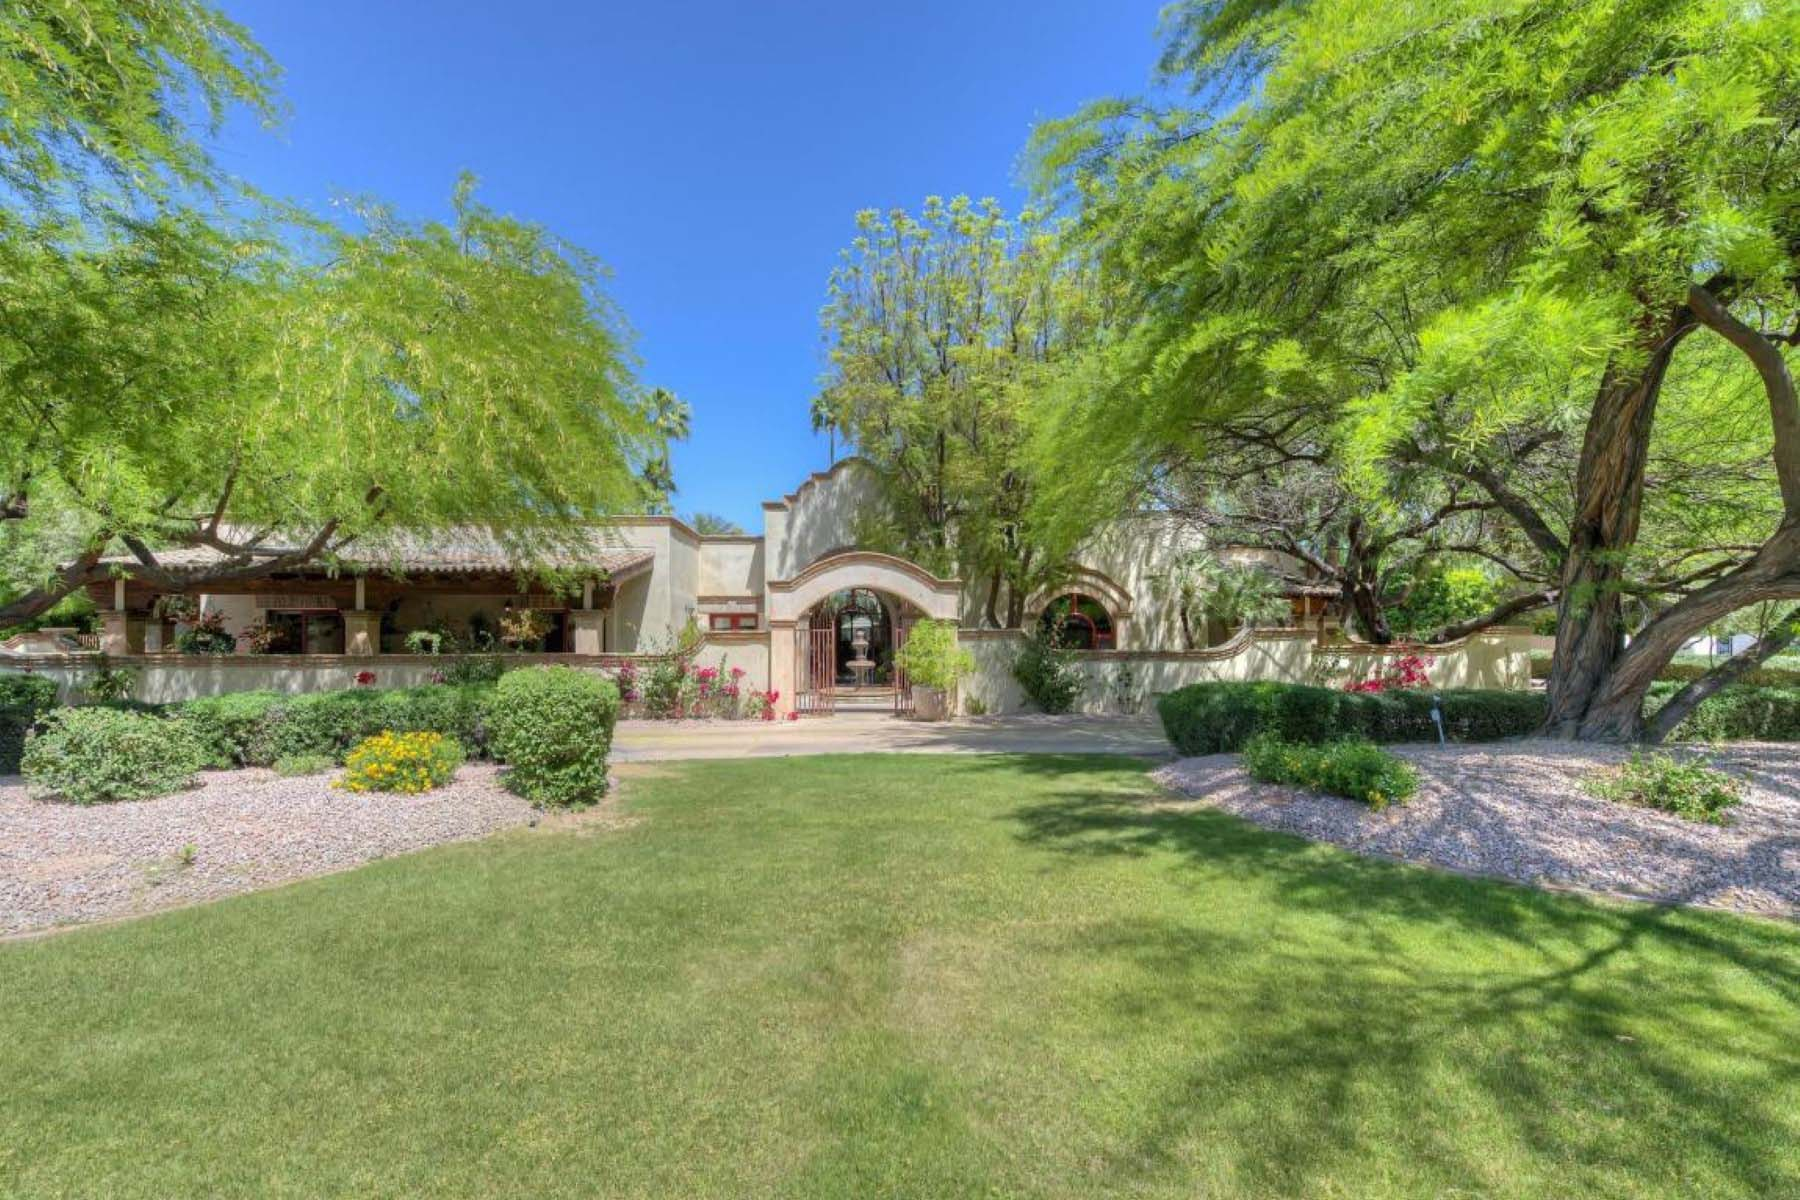 Moradia para Venda às orgeous Spanish colonial home filled with charm and attention to detail. 8145 N 68TH ST Paradise Valley, Arizona 85253 Estados Unidos